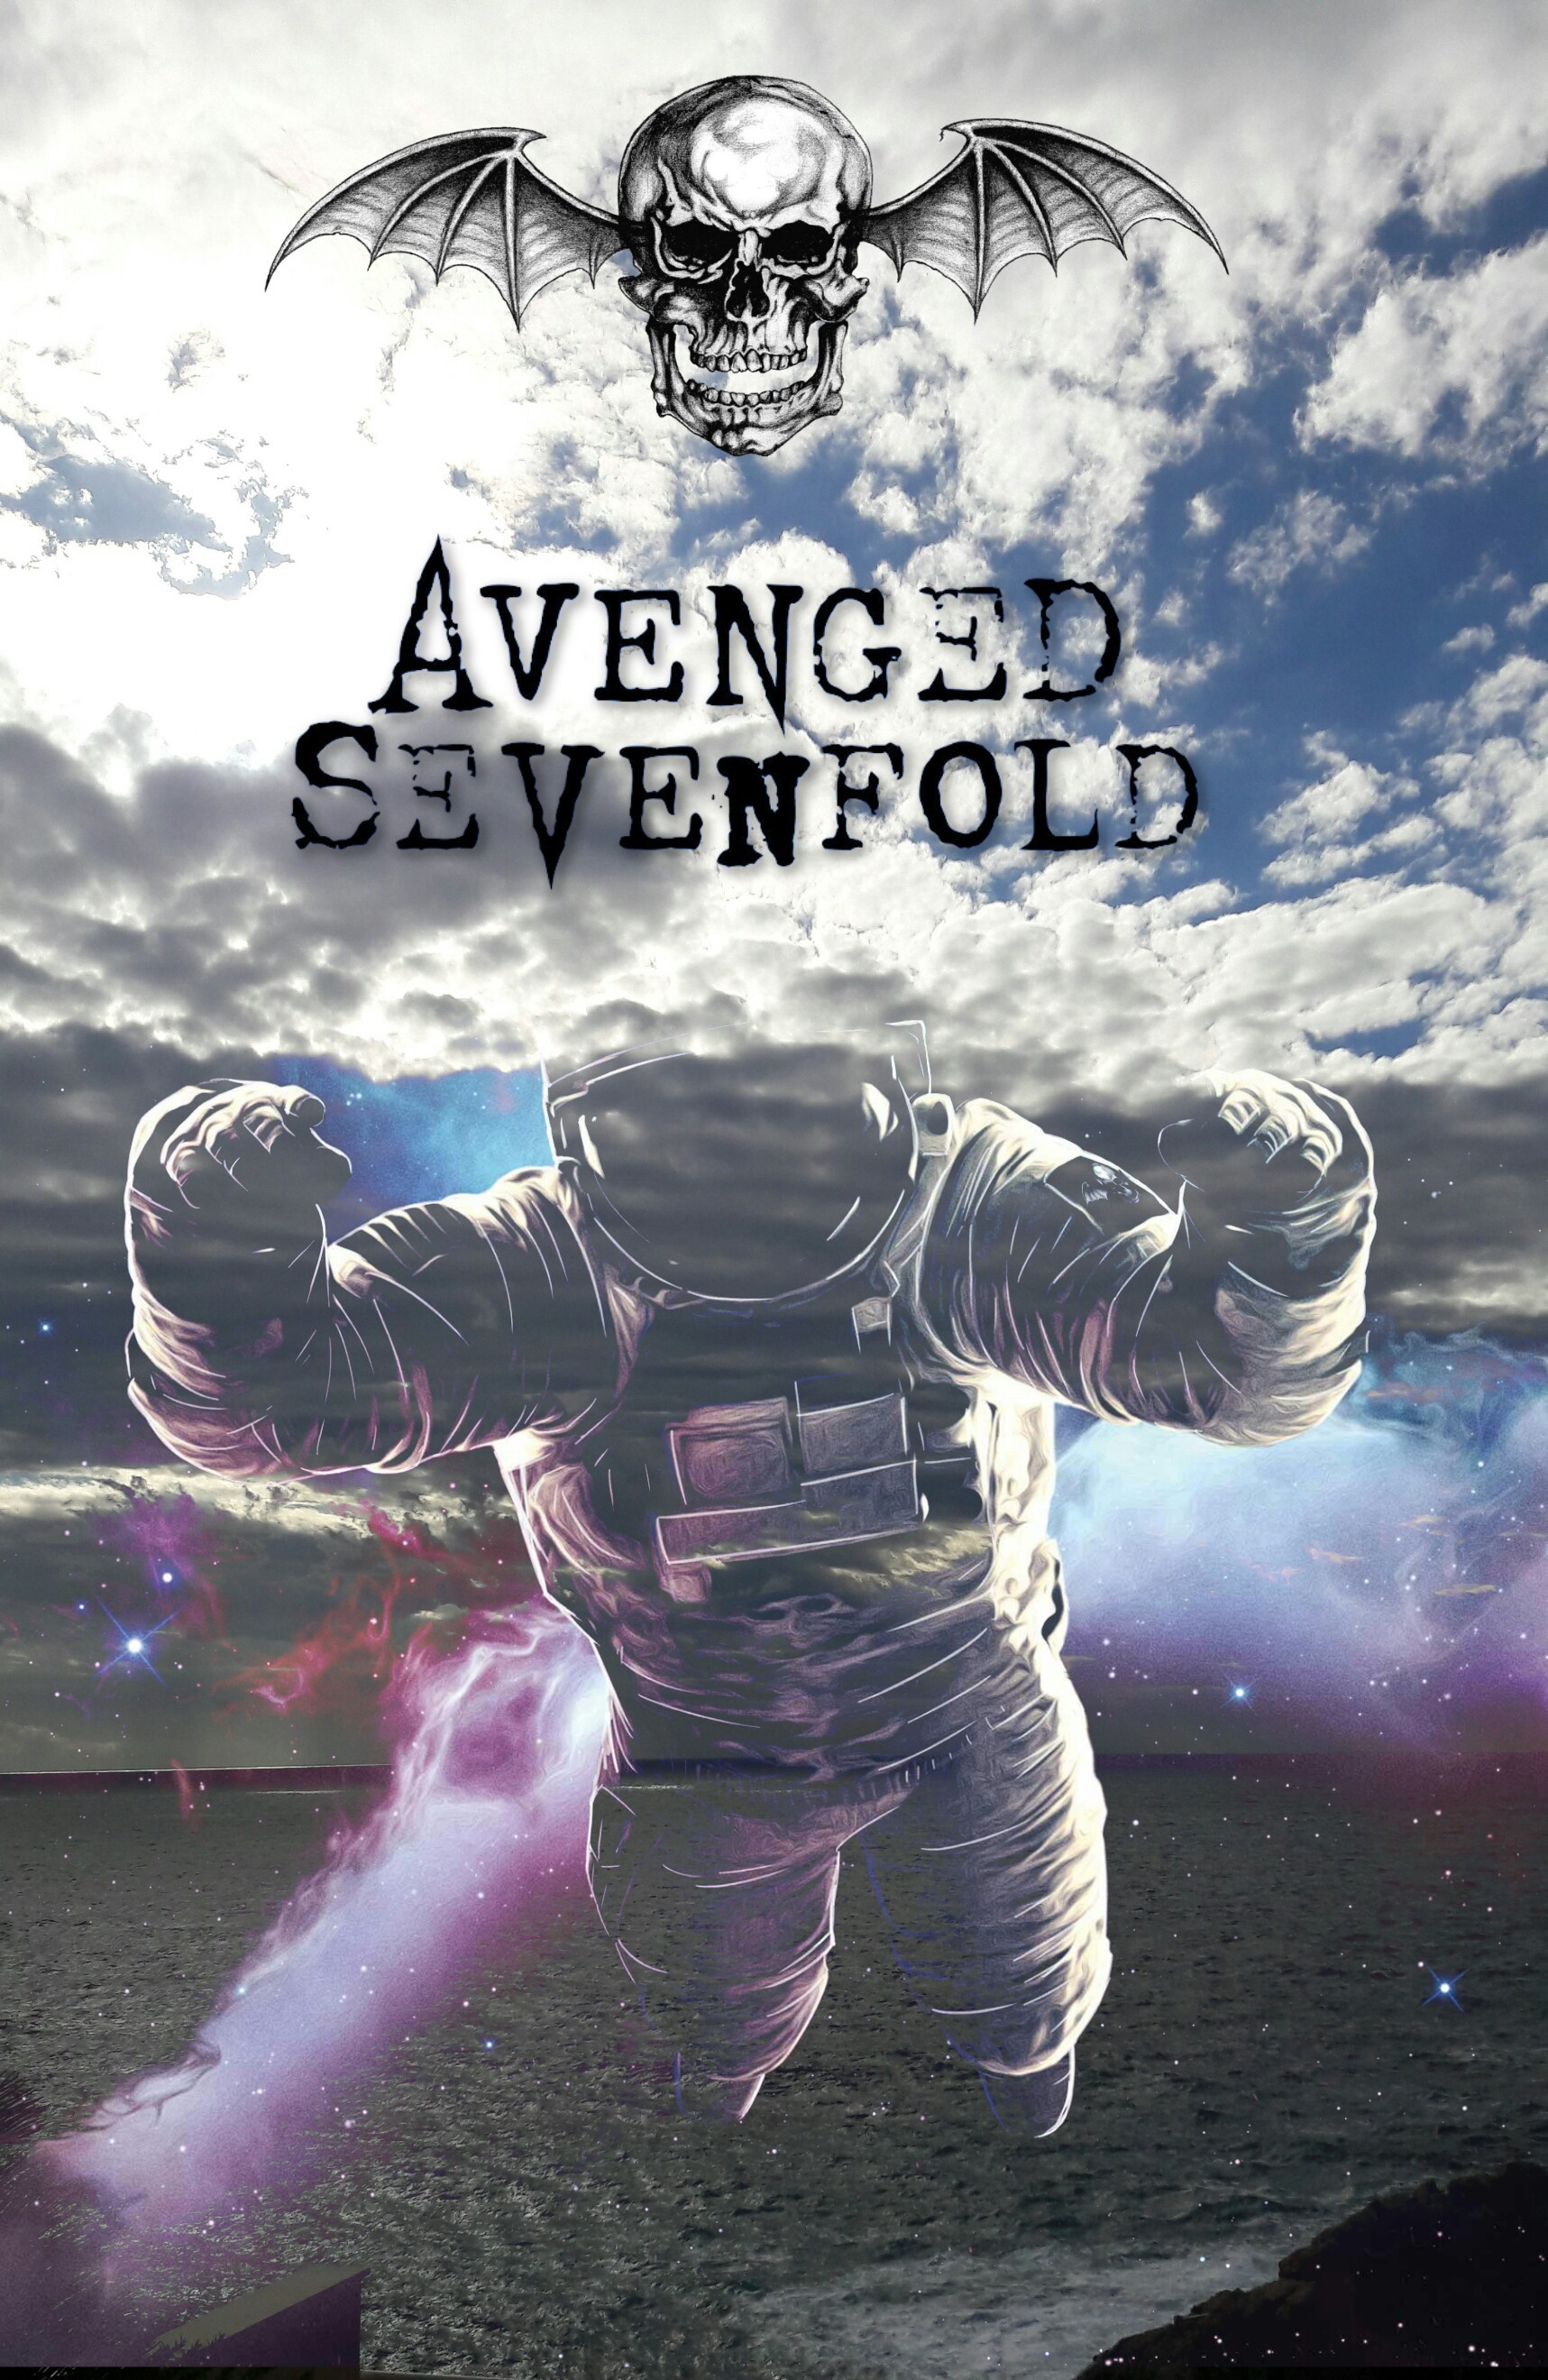 Avenged sevenfold wallpaper hd 66 images 1920x1080 avenged sevenfold backdrop wallpaper voltagebd Gallery